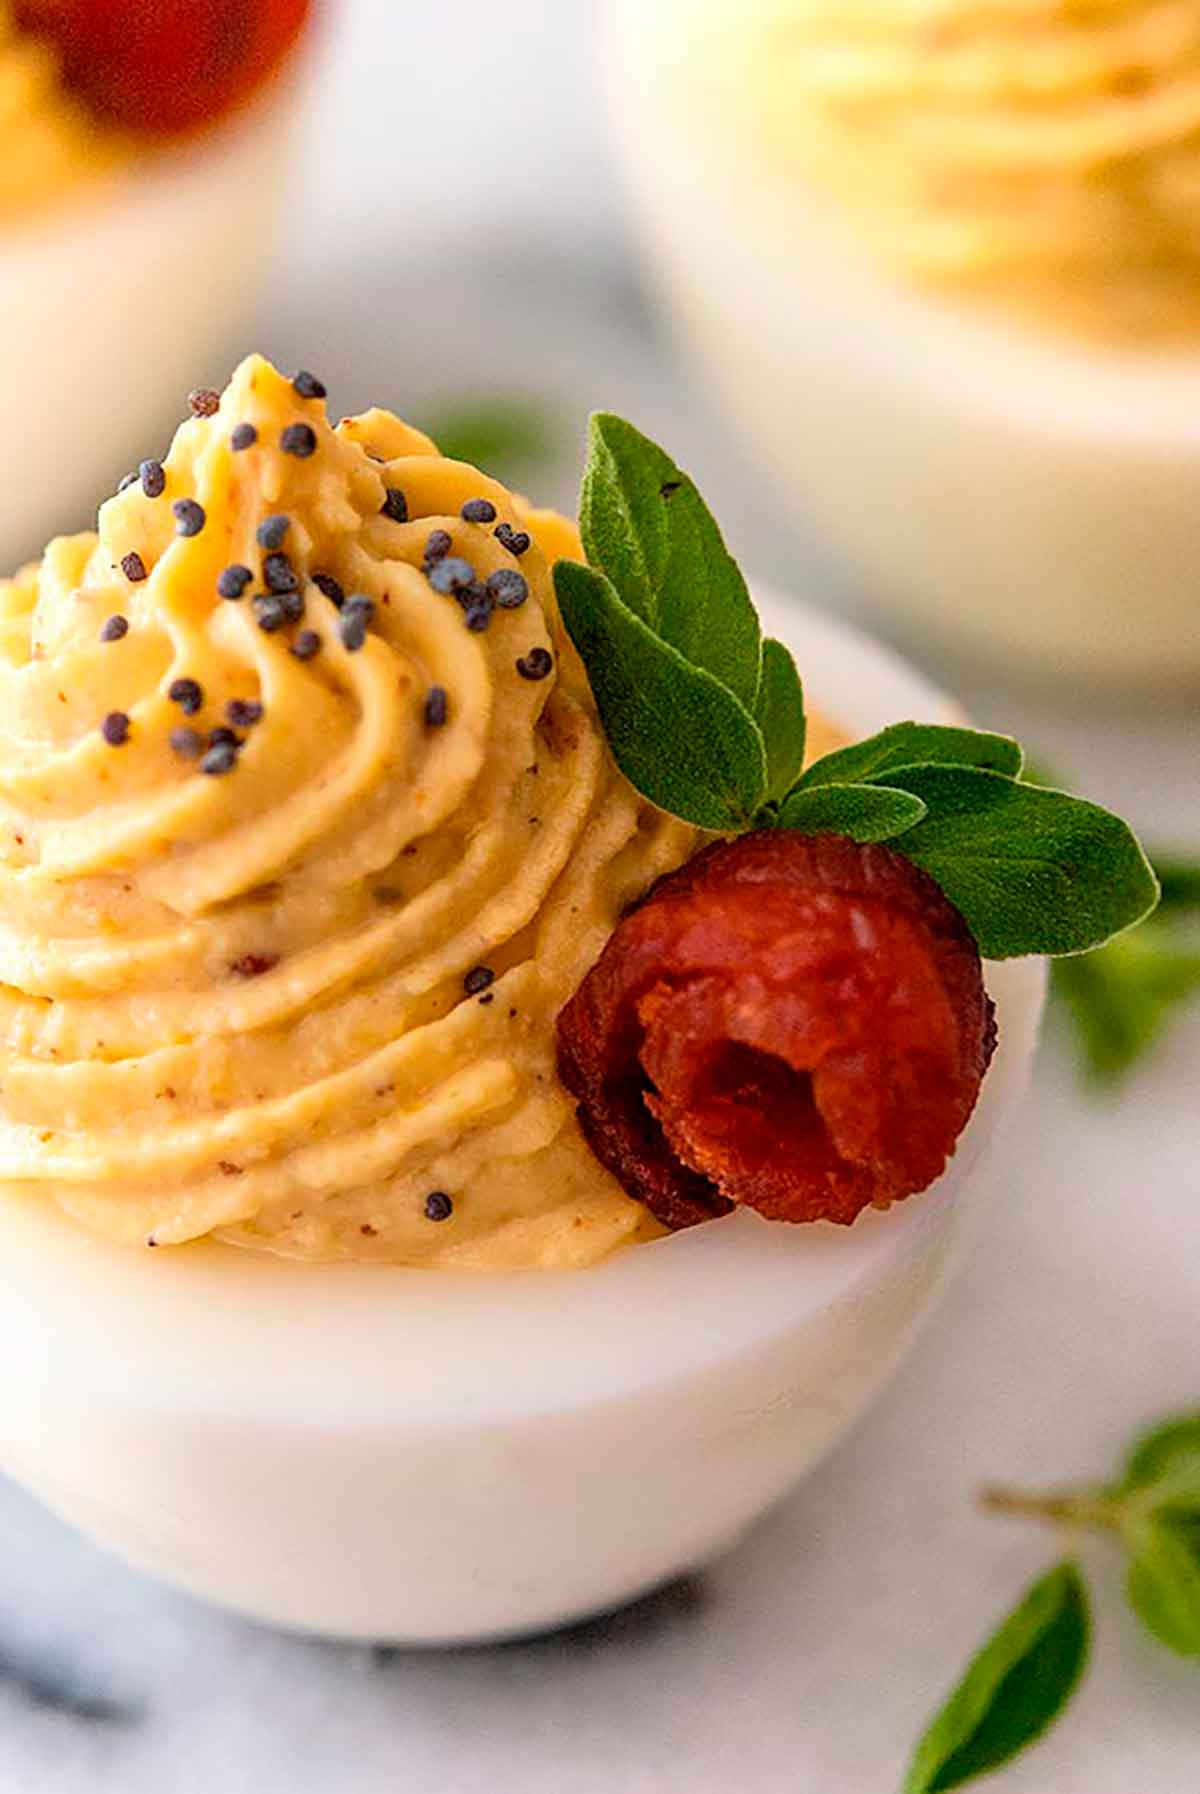 A deviled egg garnished with poppyseeds, a bacon rose, and small leaves on a white plate, surrounded by a few others.